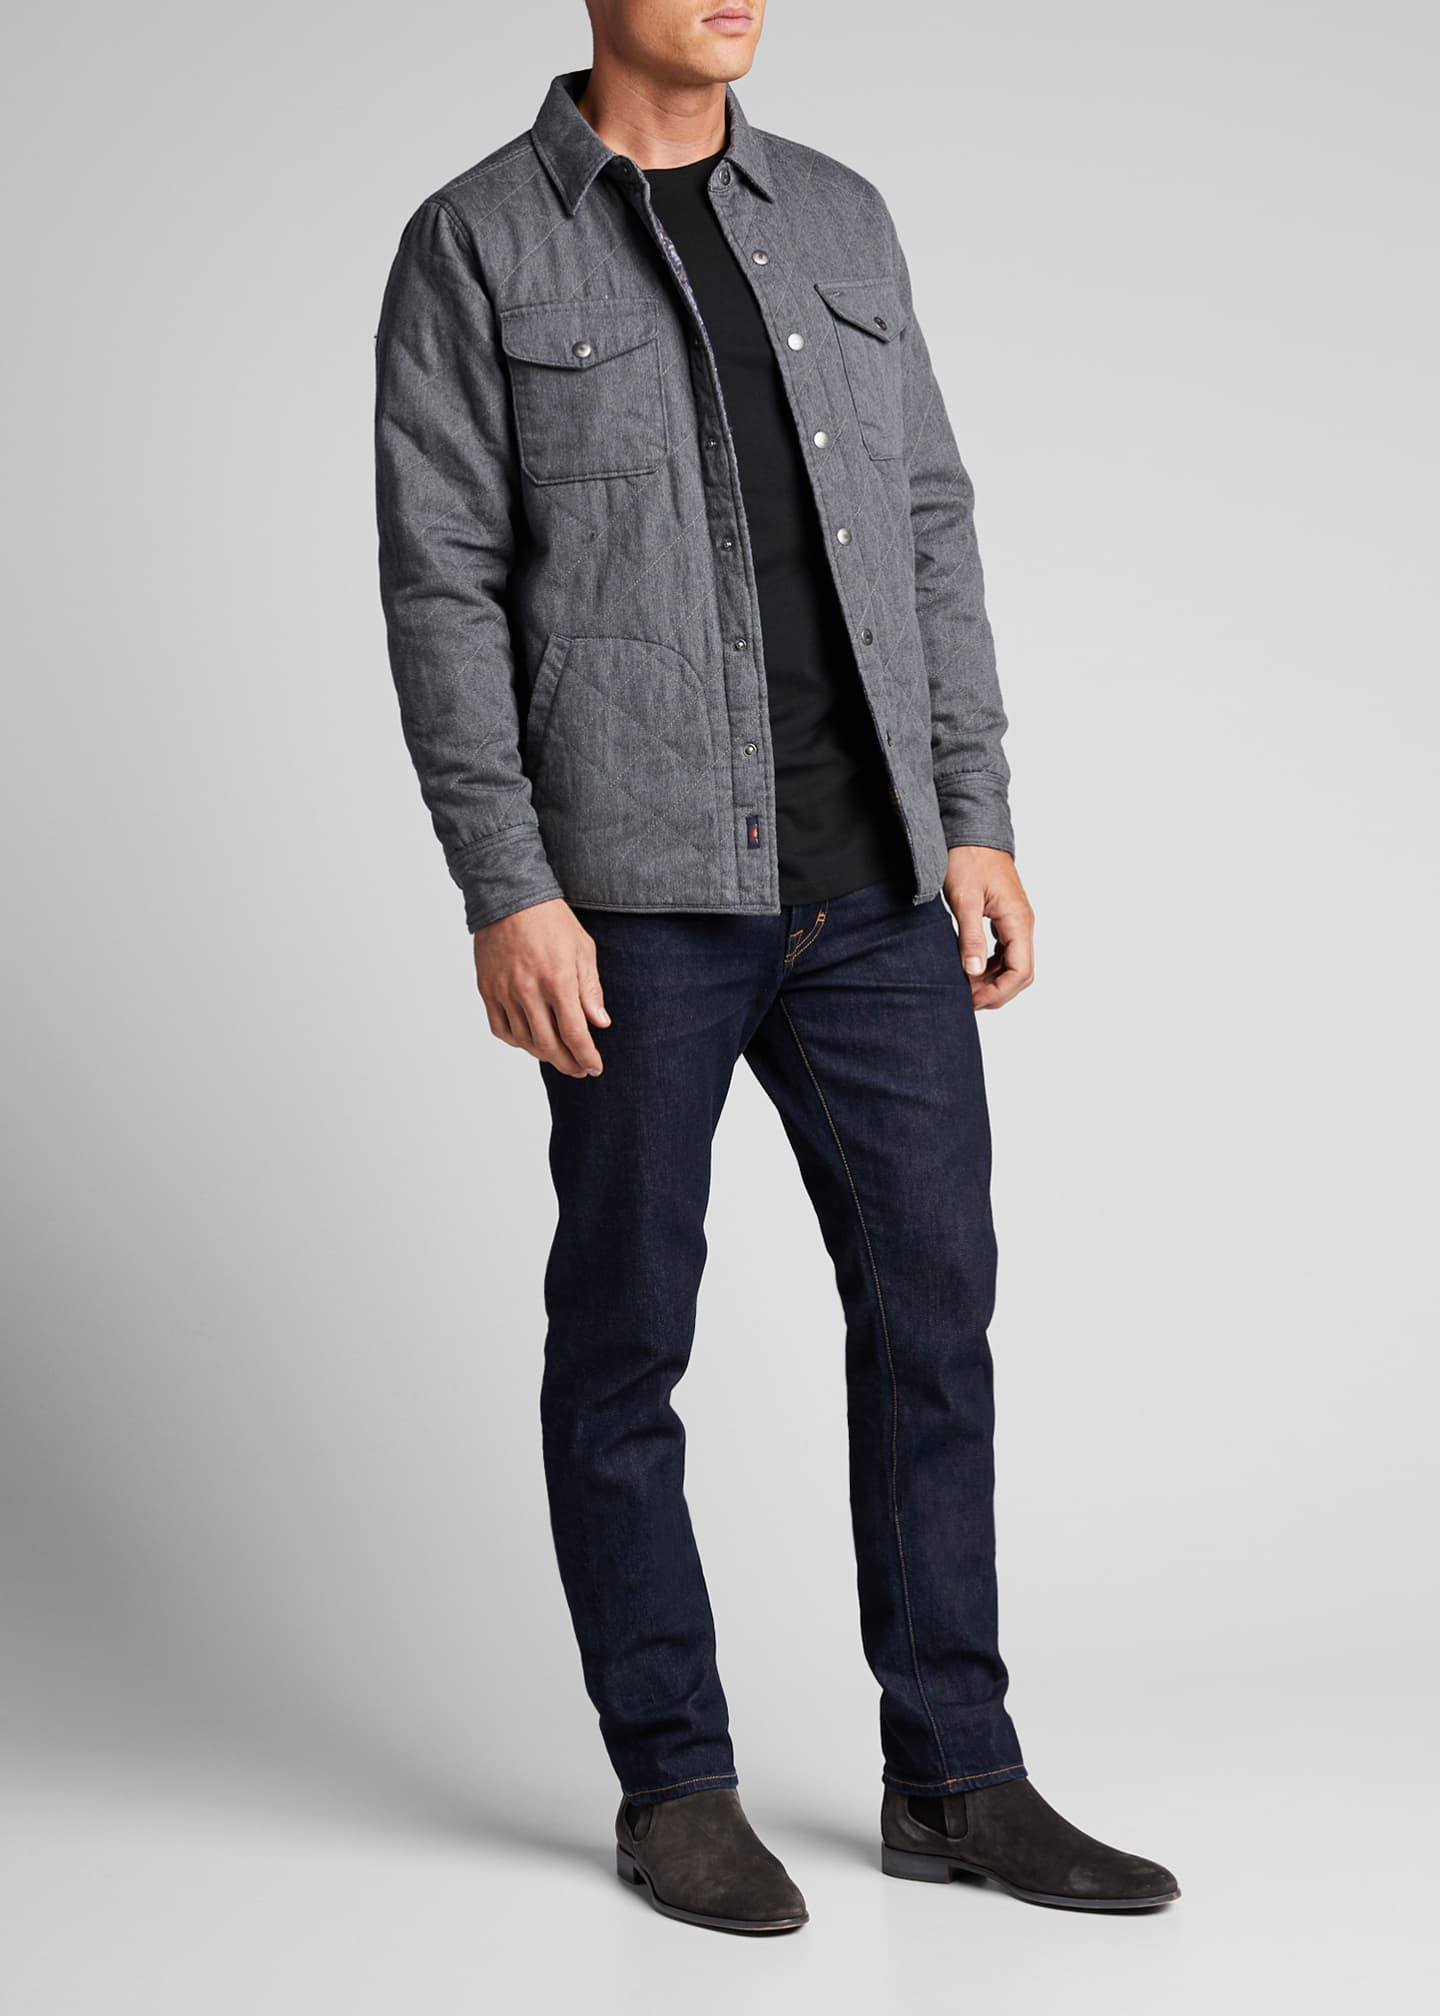 Faherty Men's Reversible Bondi Jacket